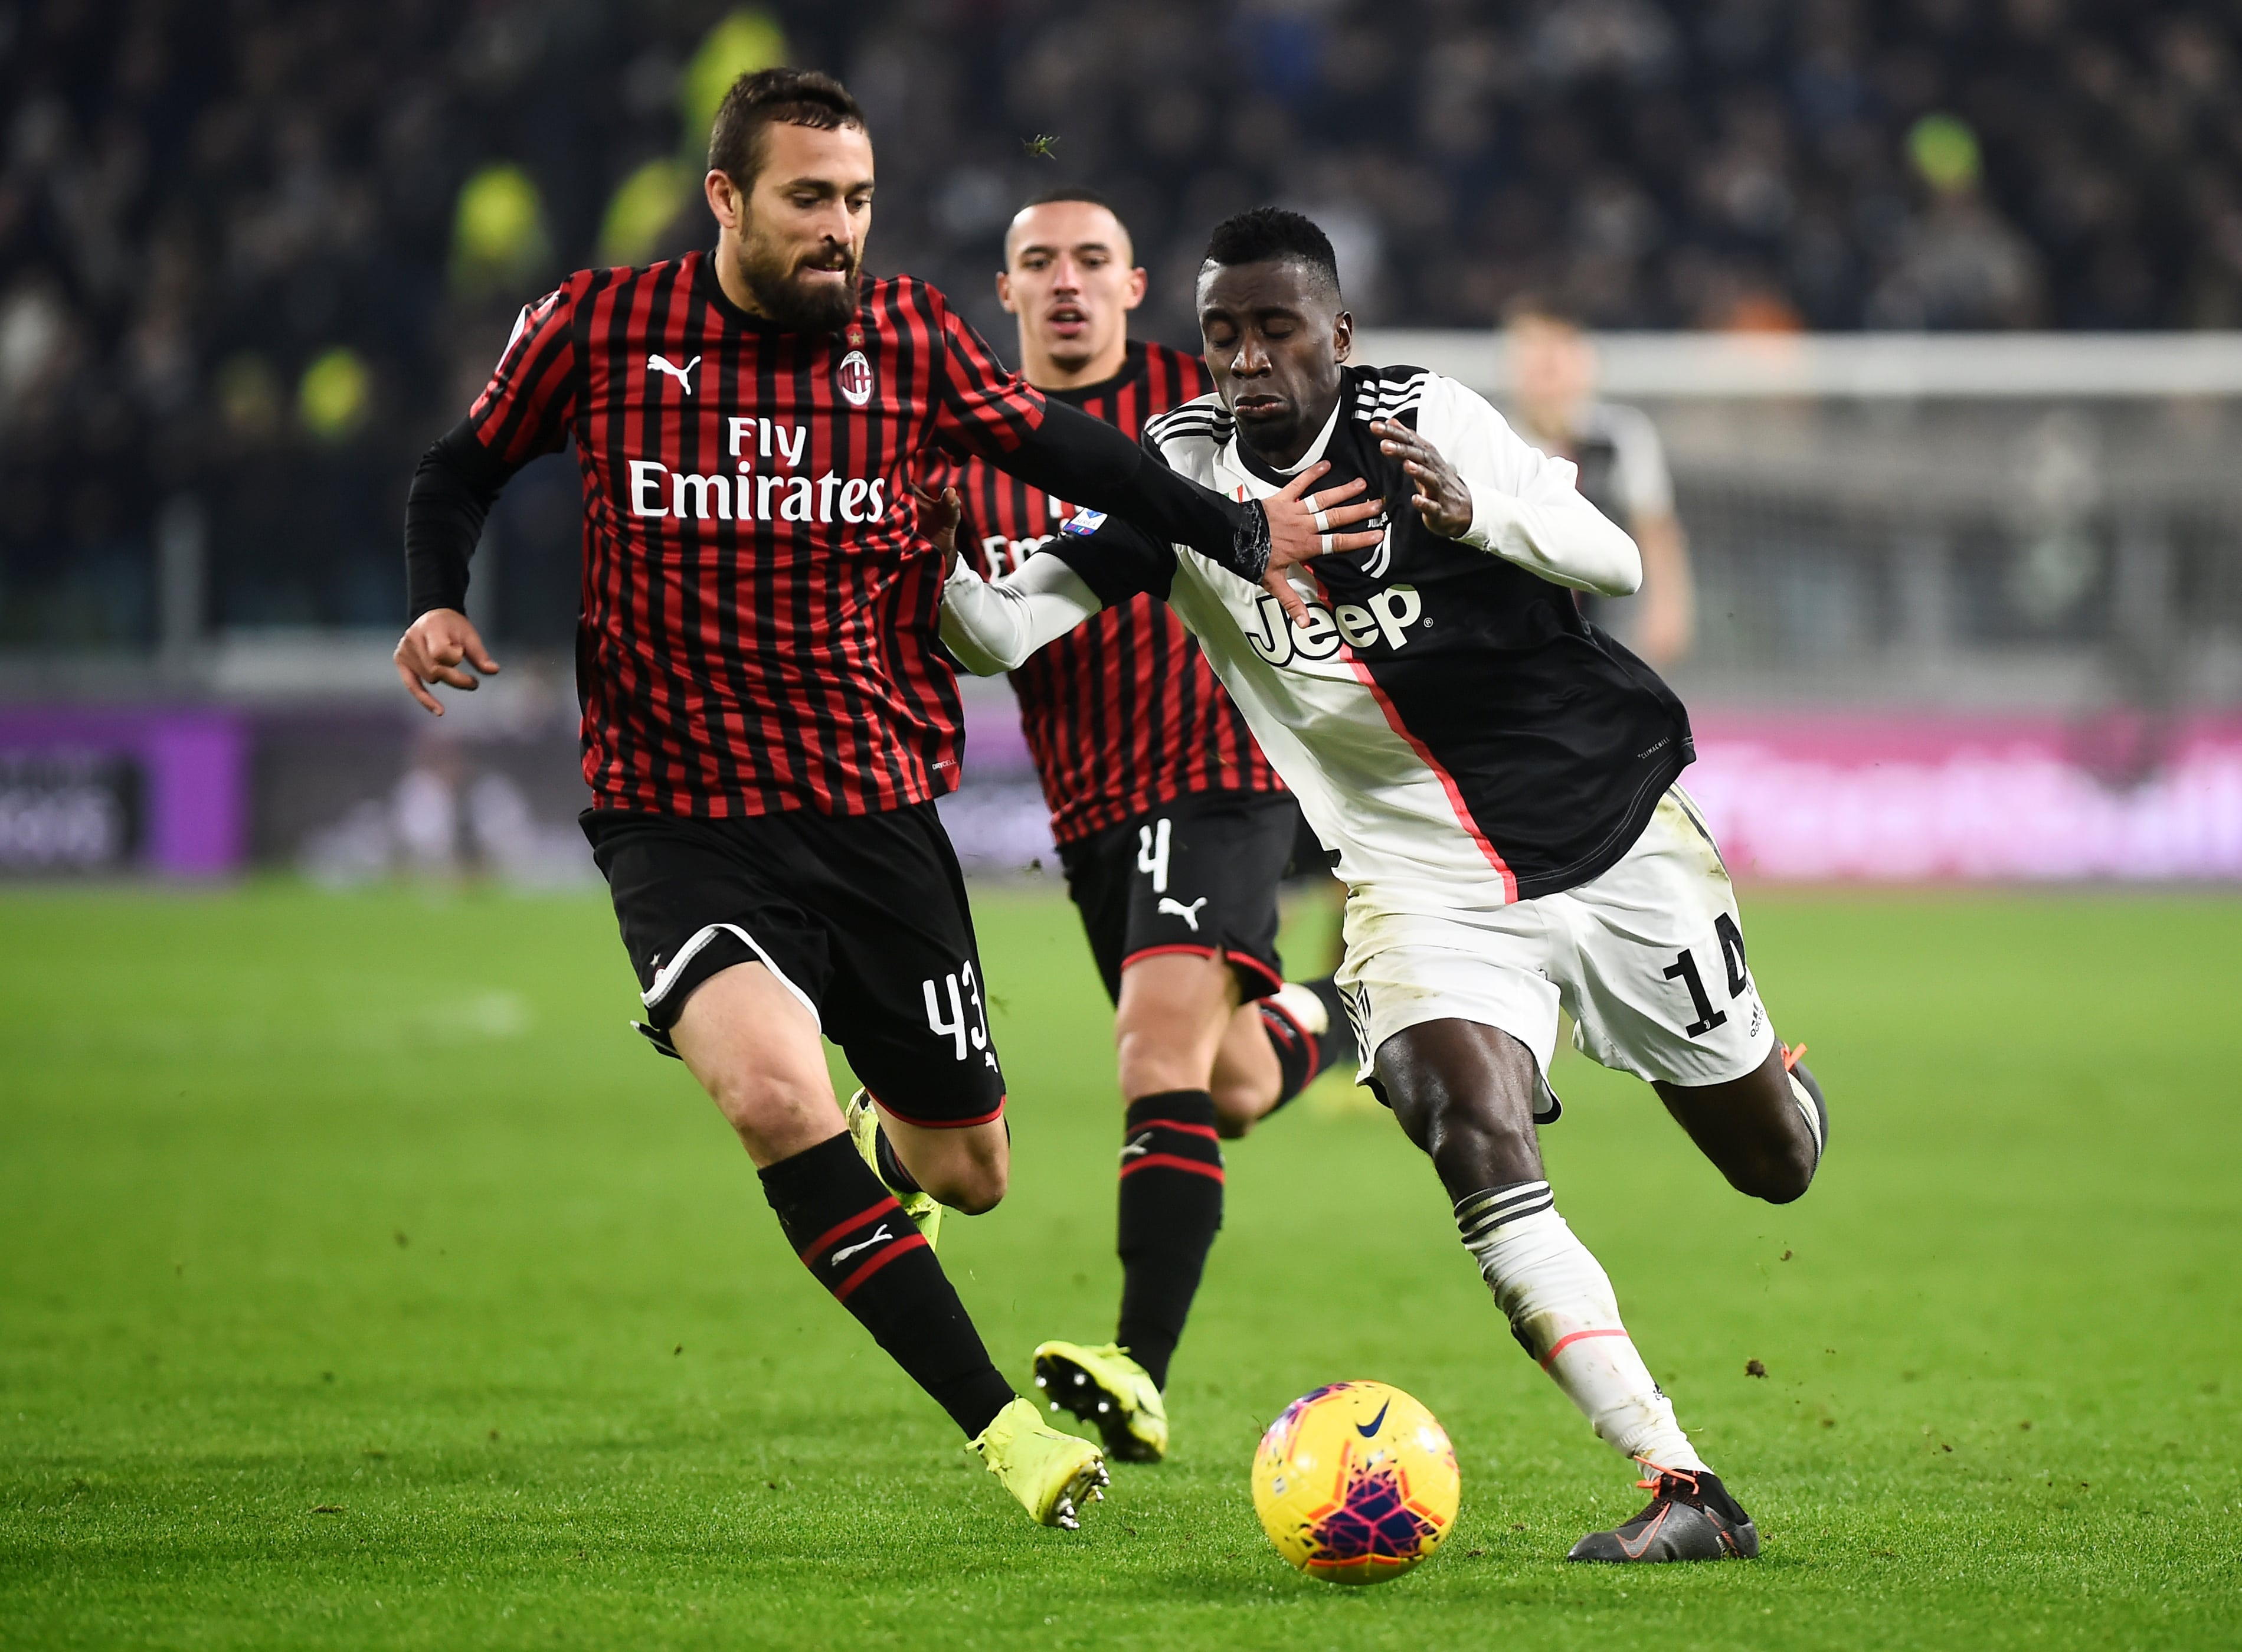 AC Milan defender Leo Duarte to miss 3-4 months of action with injury